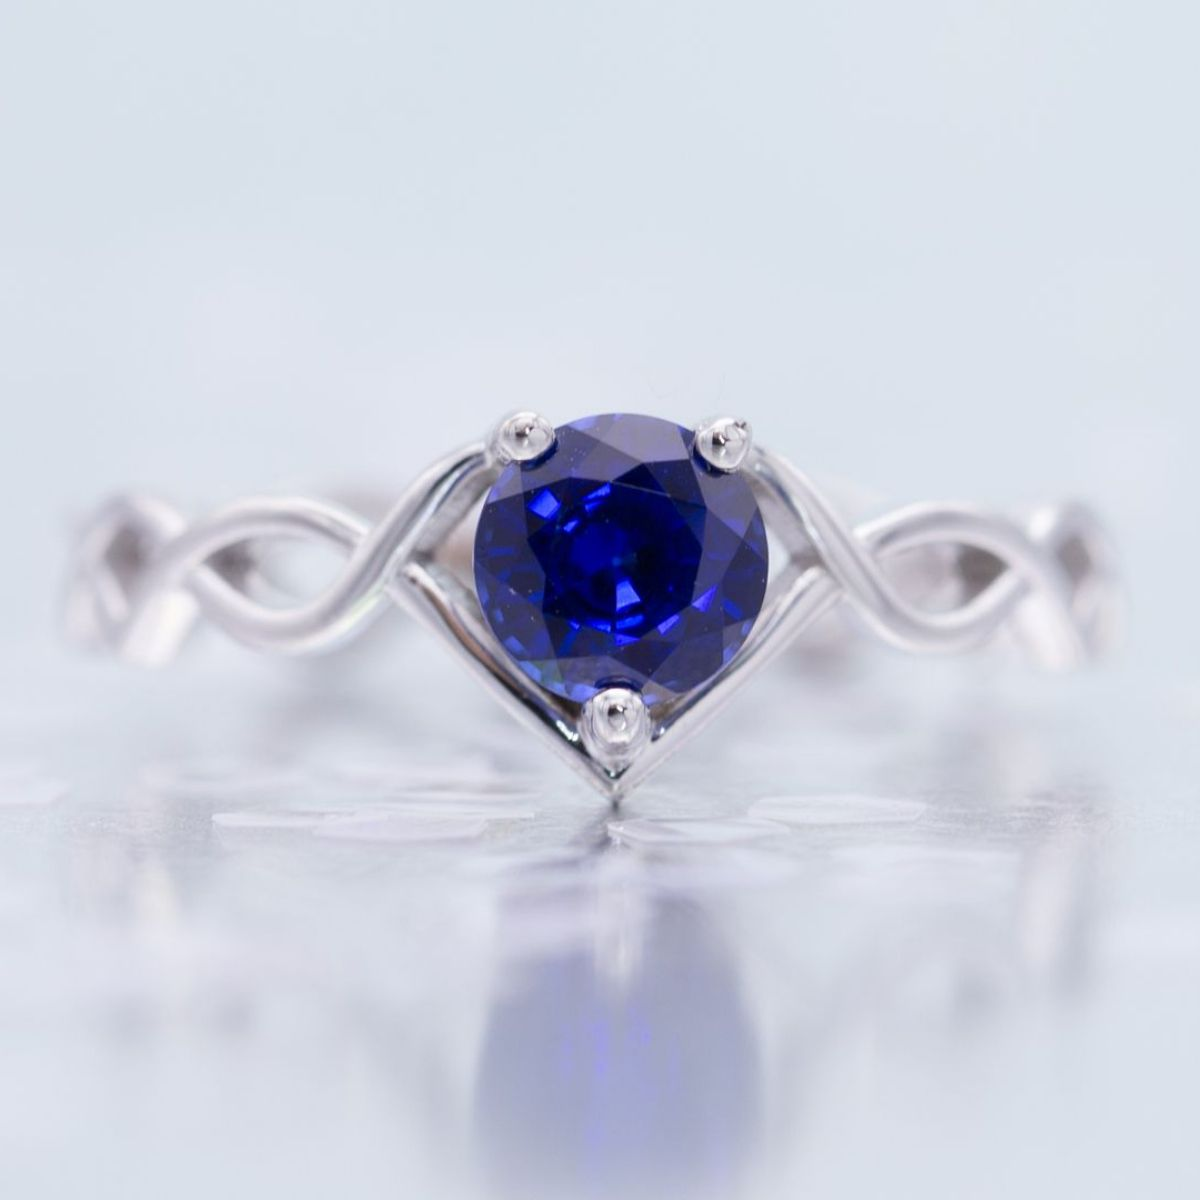 carats royal shape color sapphire cushion with blue gia img natural deep heated report